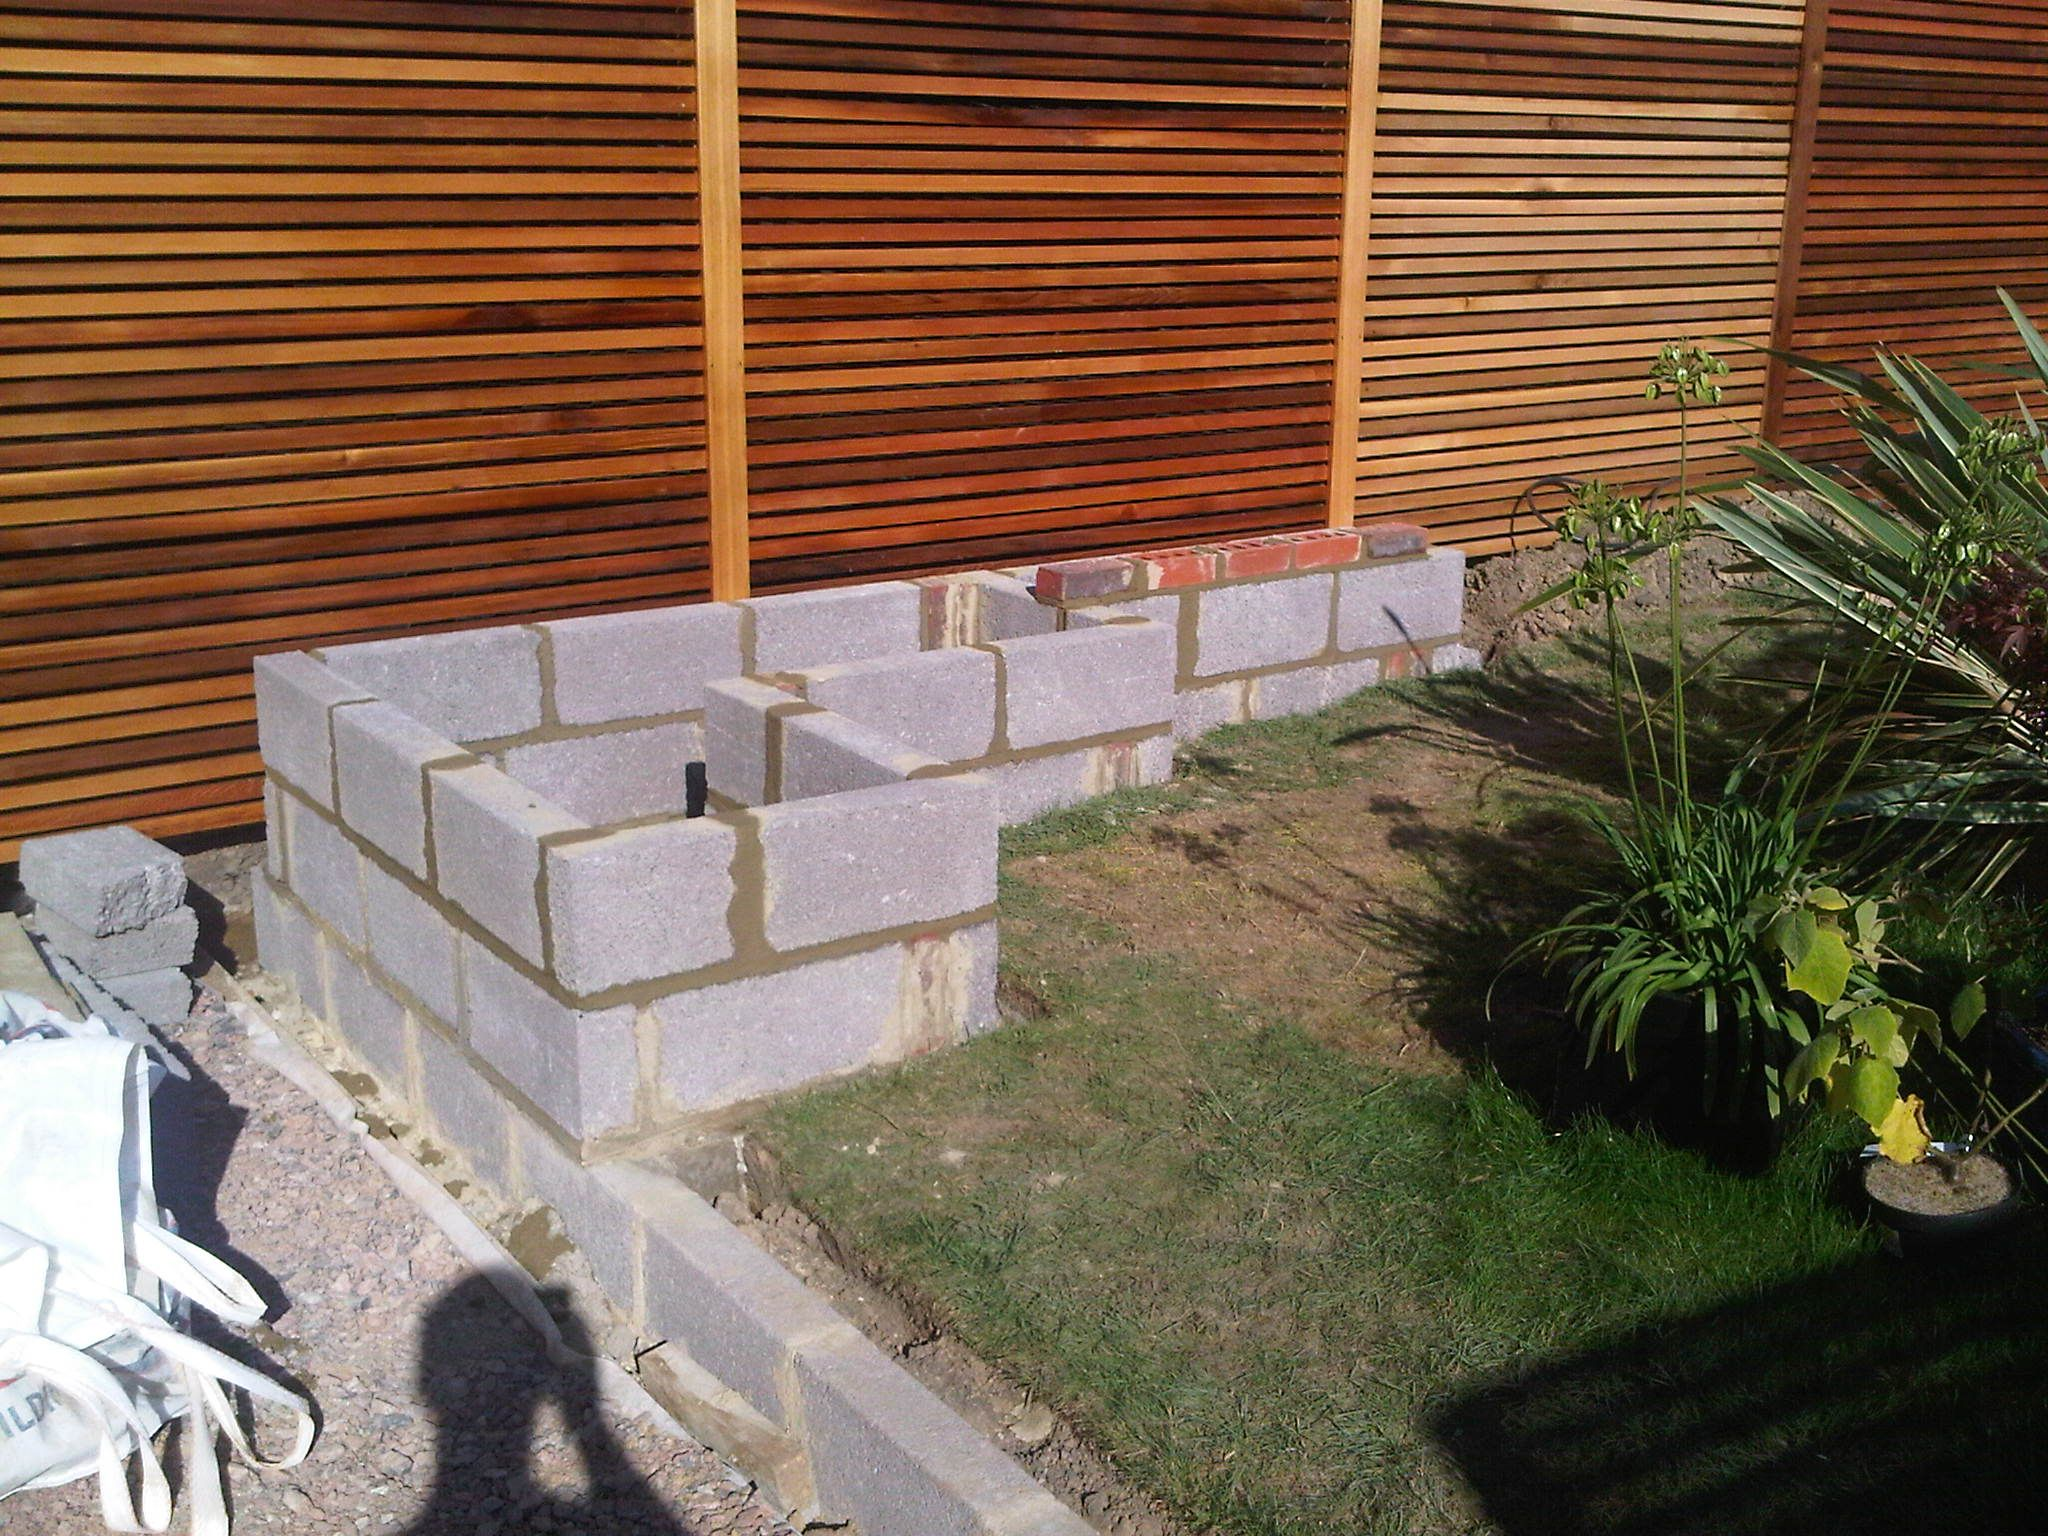 Garden Wall Design Ideas Ideas for garden walls design home design ideas ideas for garden walls design workwithnaturefo